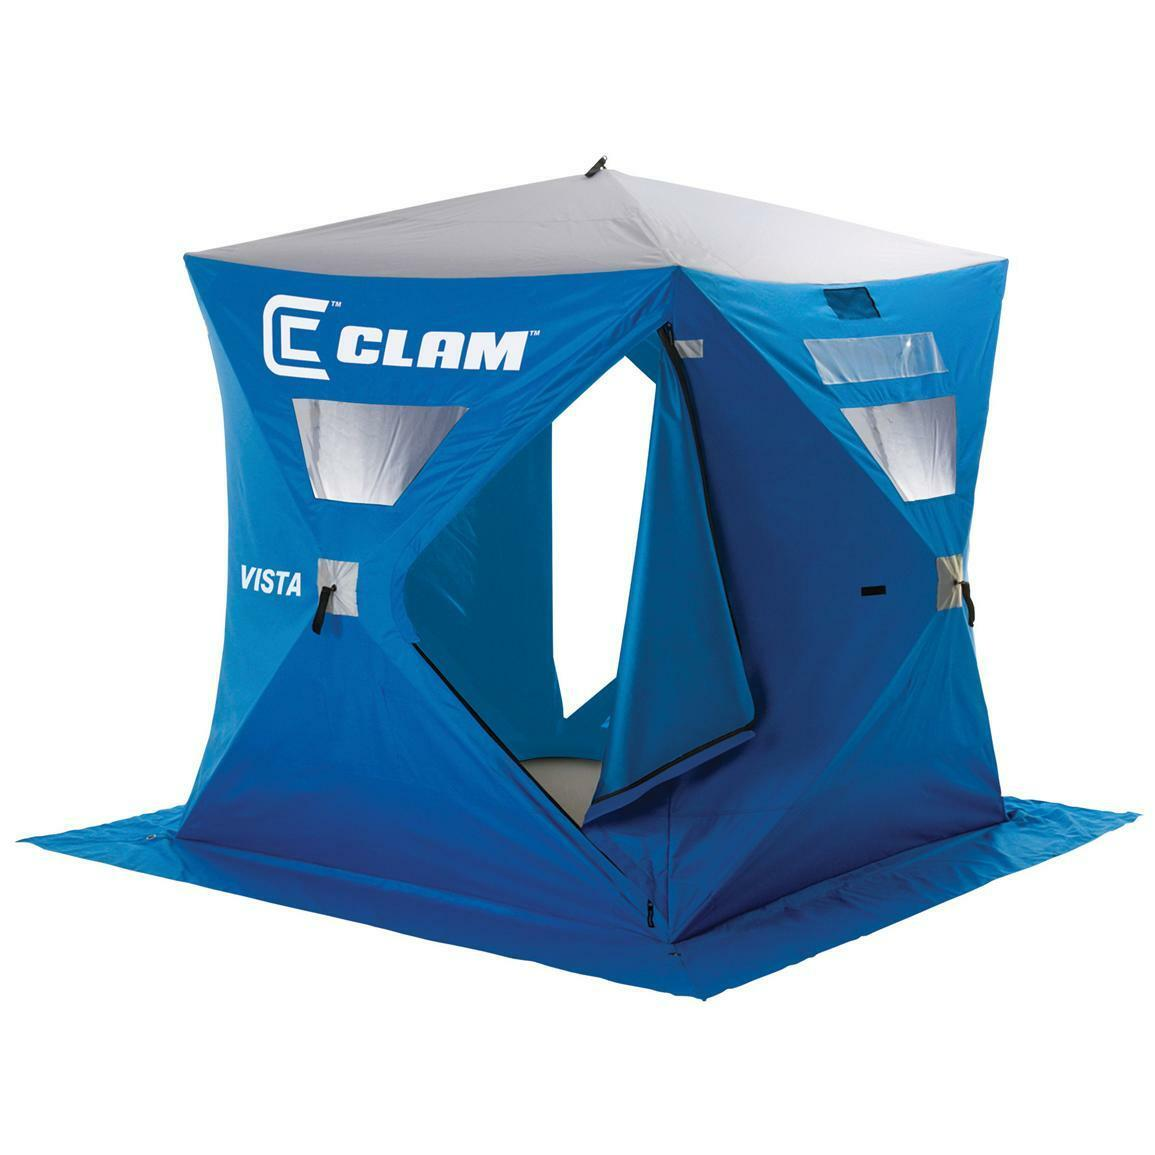 CLAM VISTA 9127 2-3 PERSON  ICE FISHING SHELTER  brand on sale clearance